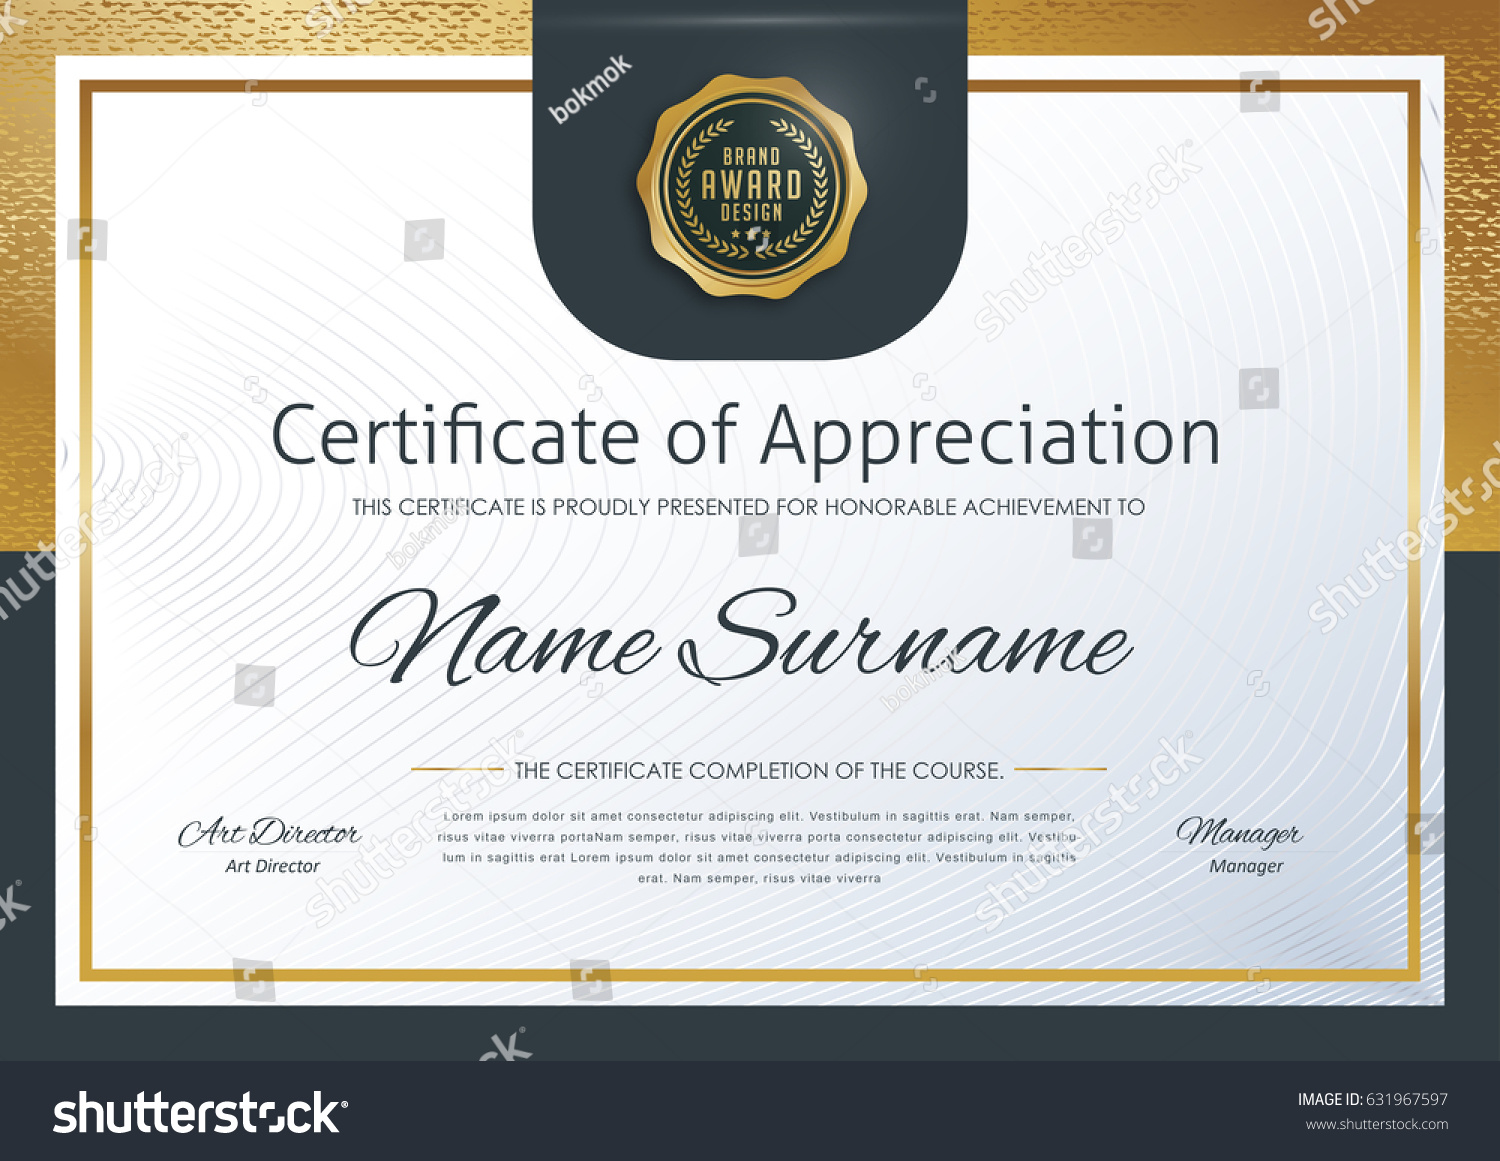 certificate template luxury patterndiplomavector illustration  certificate template luxury pattern diploma vector illustration